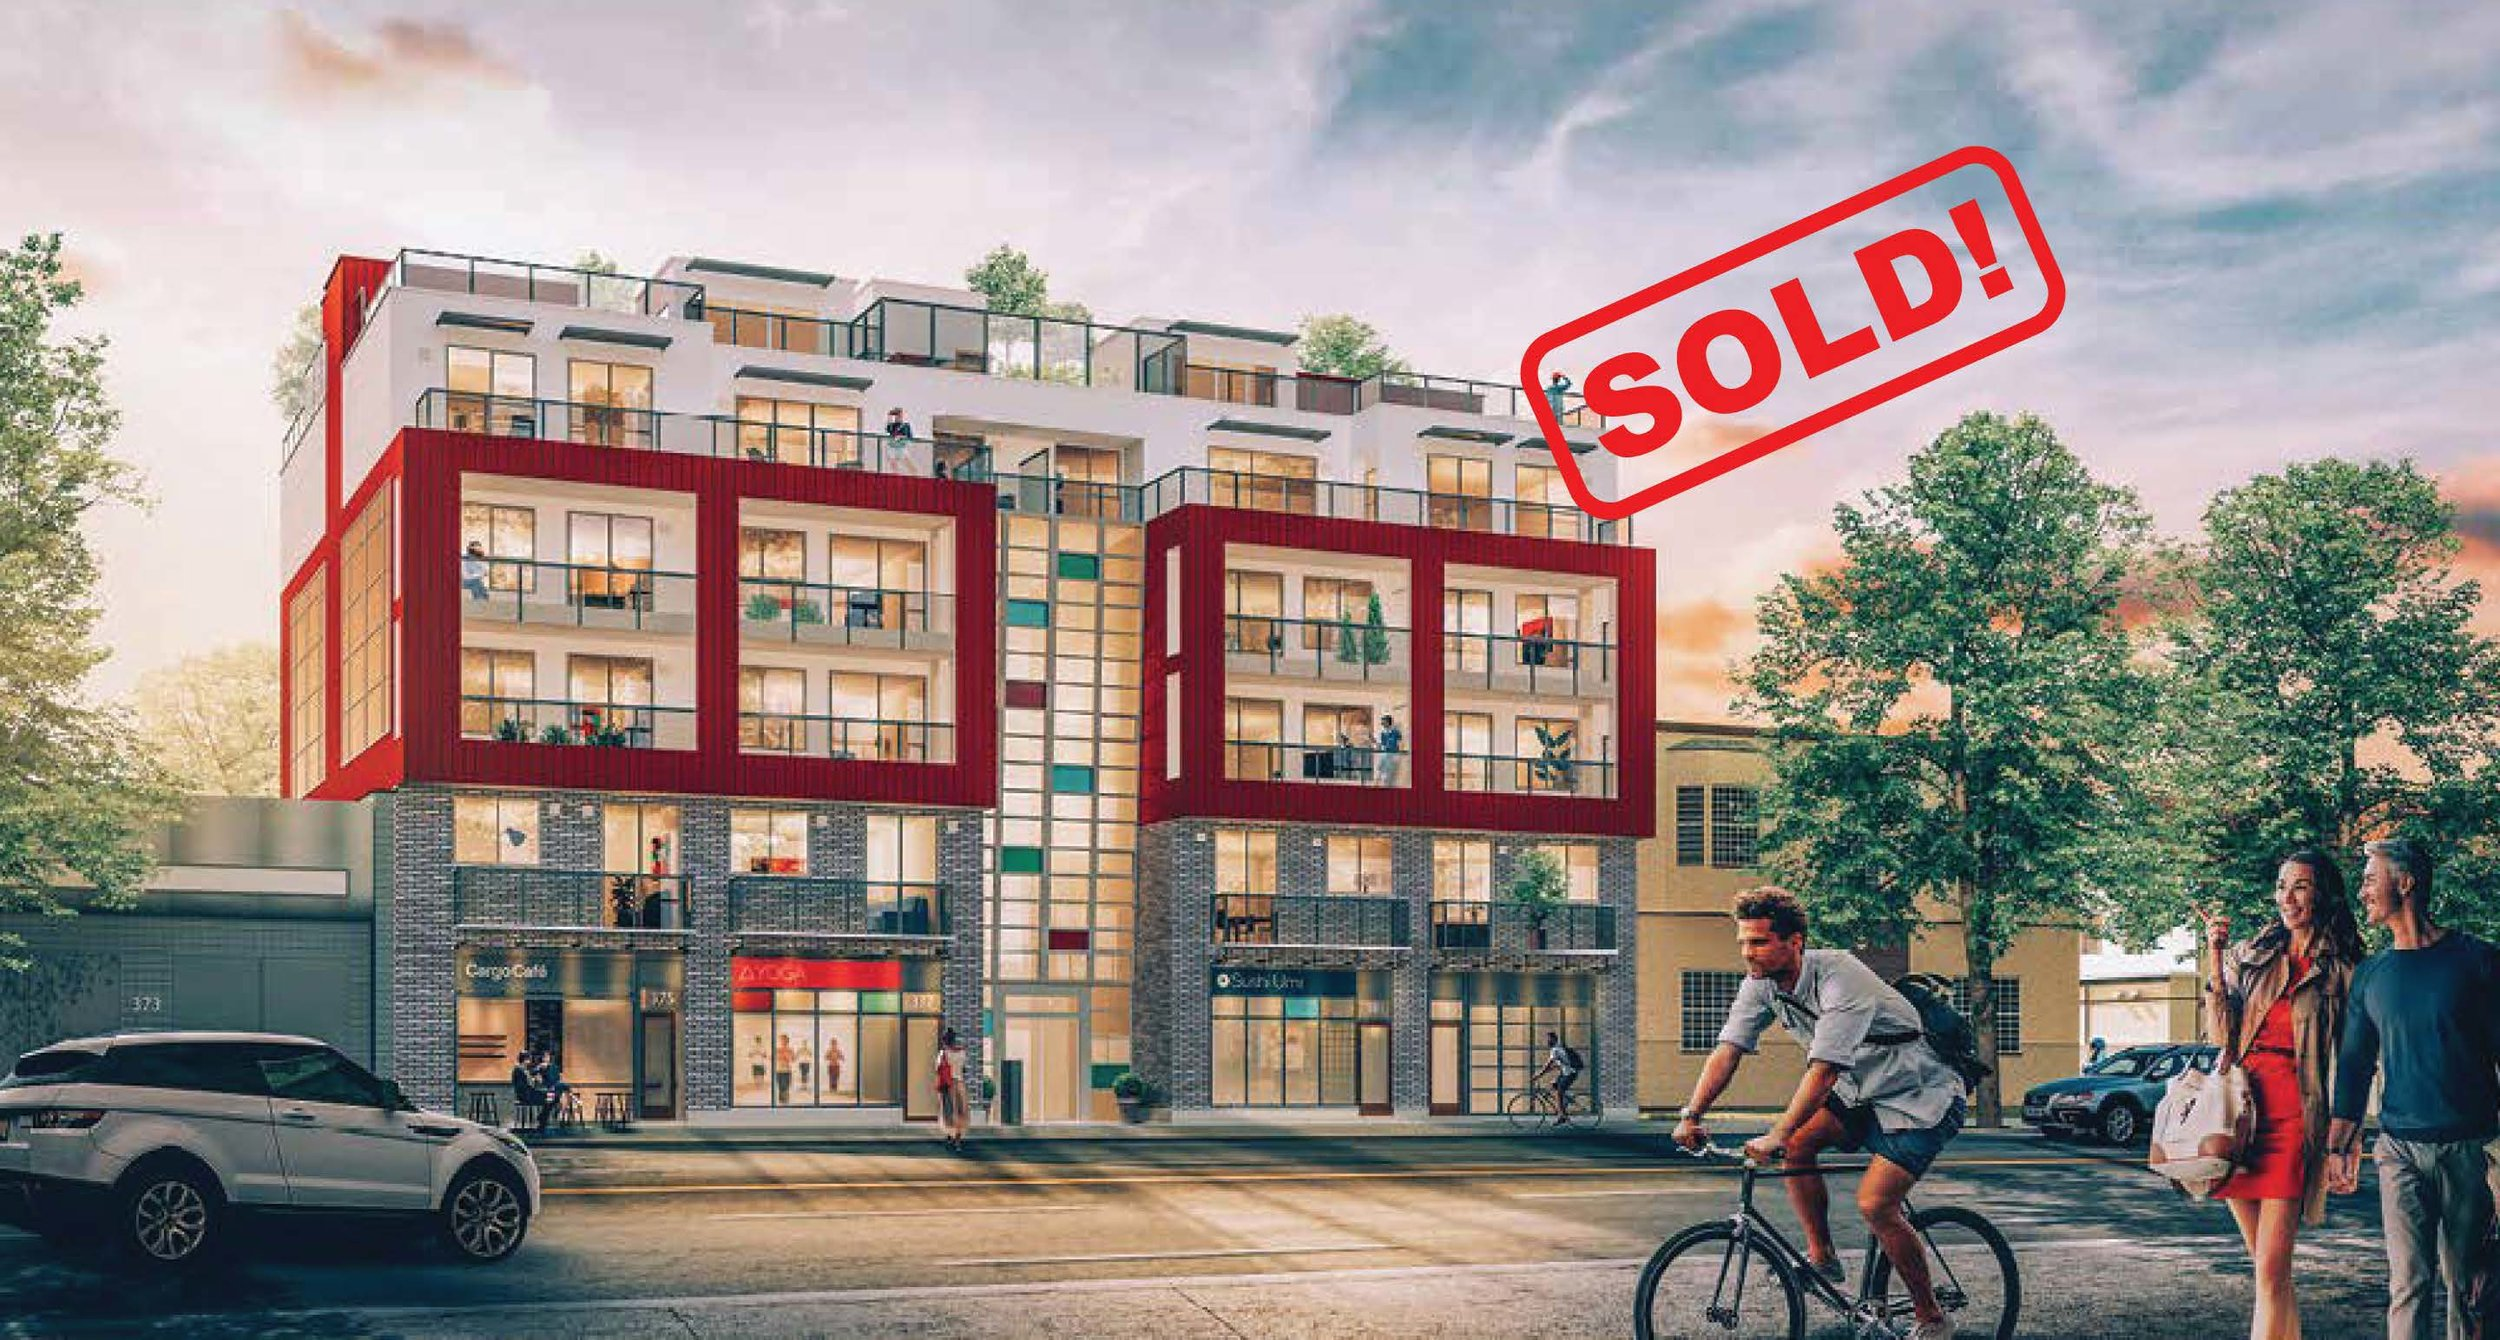 406-379 East Broadway St   sold for: $599,900  1 Bed | 1 Bath |545 SF